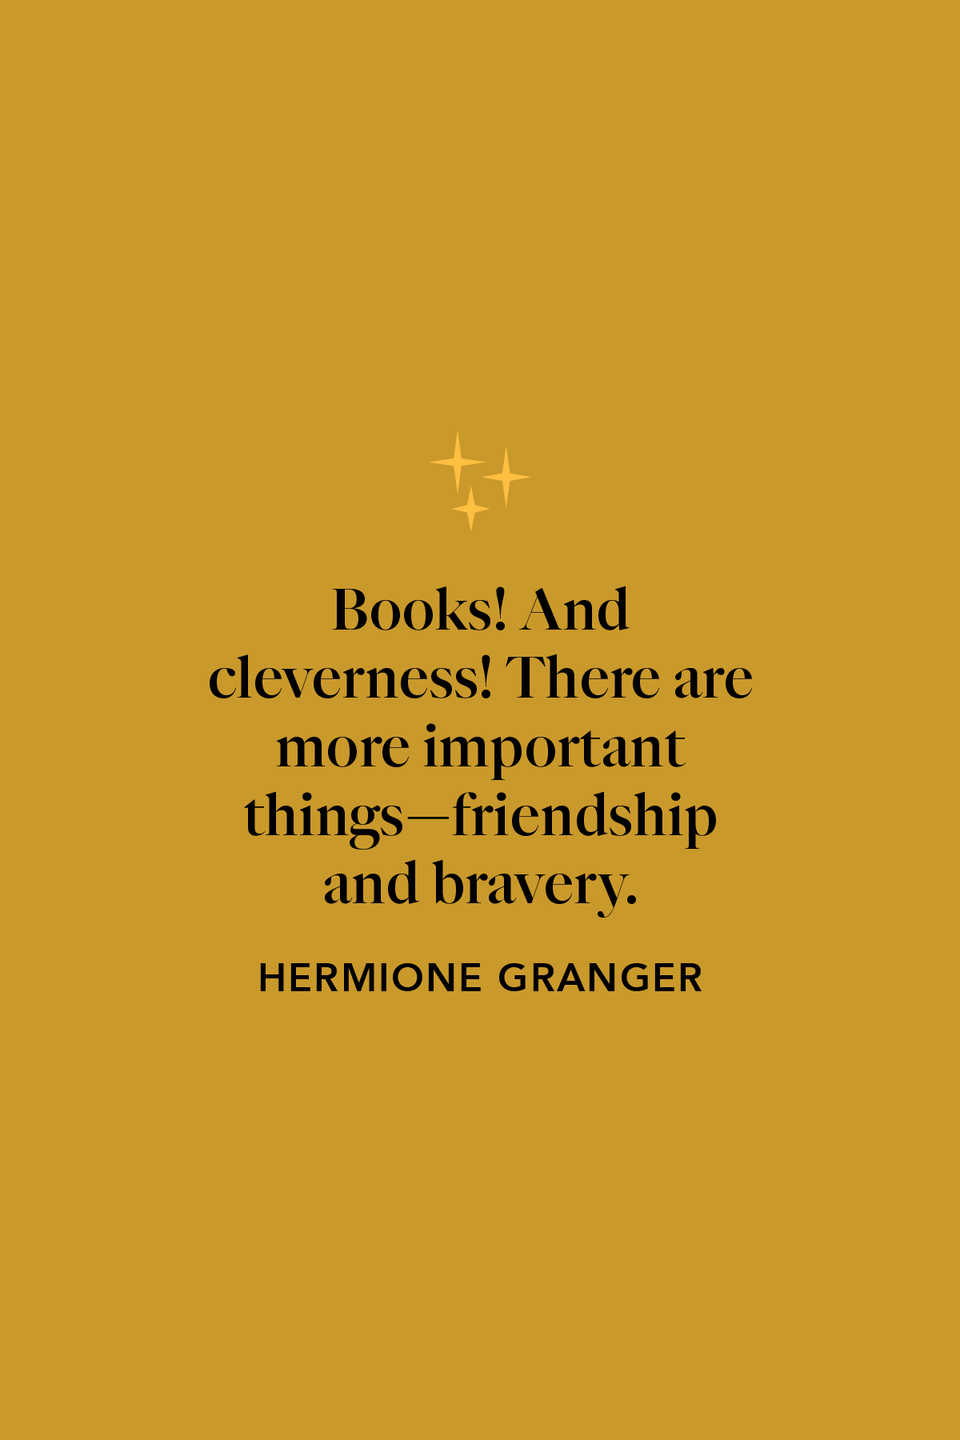 """<p>In chapter 16 of <em>The Sorcerer's Stone</em>, Hermione says to Harry: """"Books! And cleverness! There are more important things—friendship and bravery.""""</p>"""